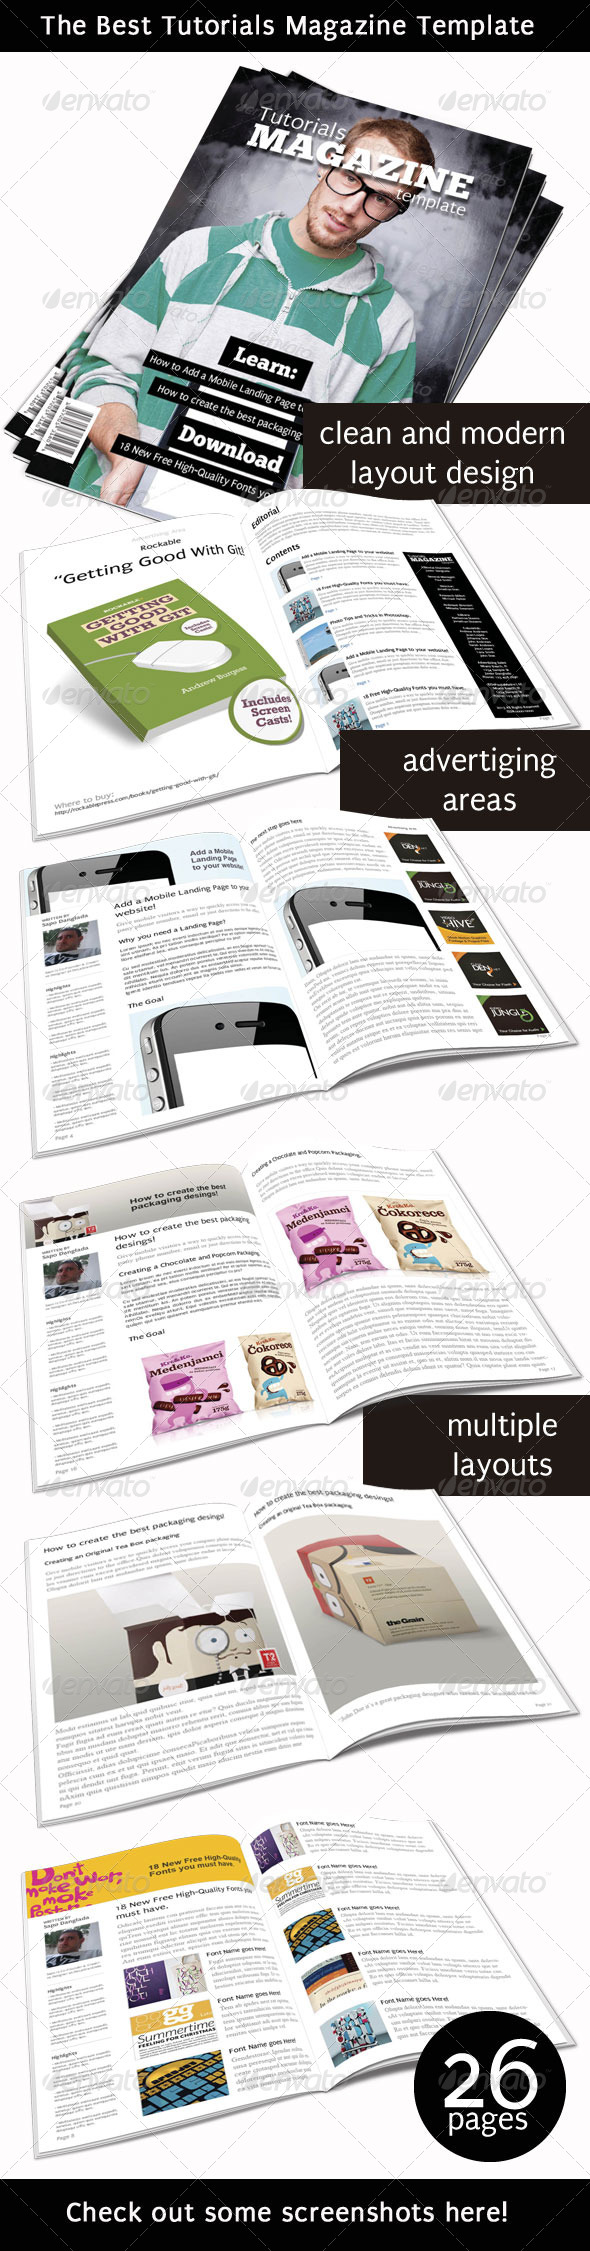 Tutorials Magazine Indesign Template - Magazines Print Templates